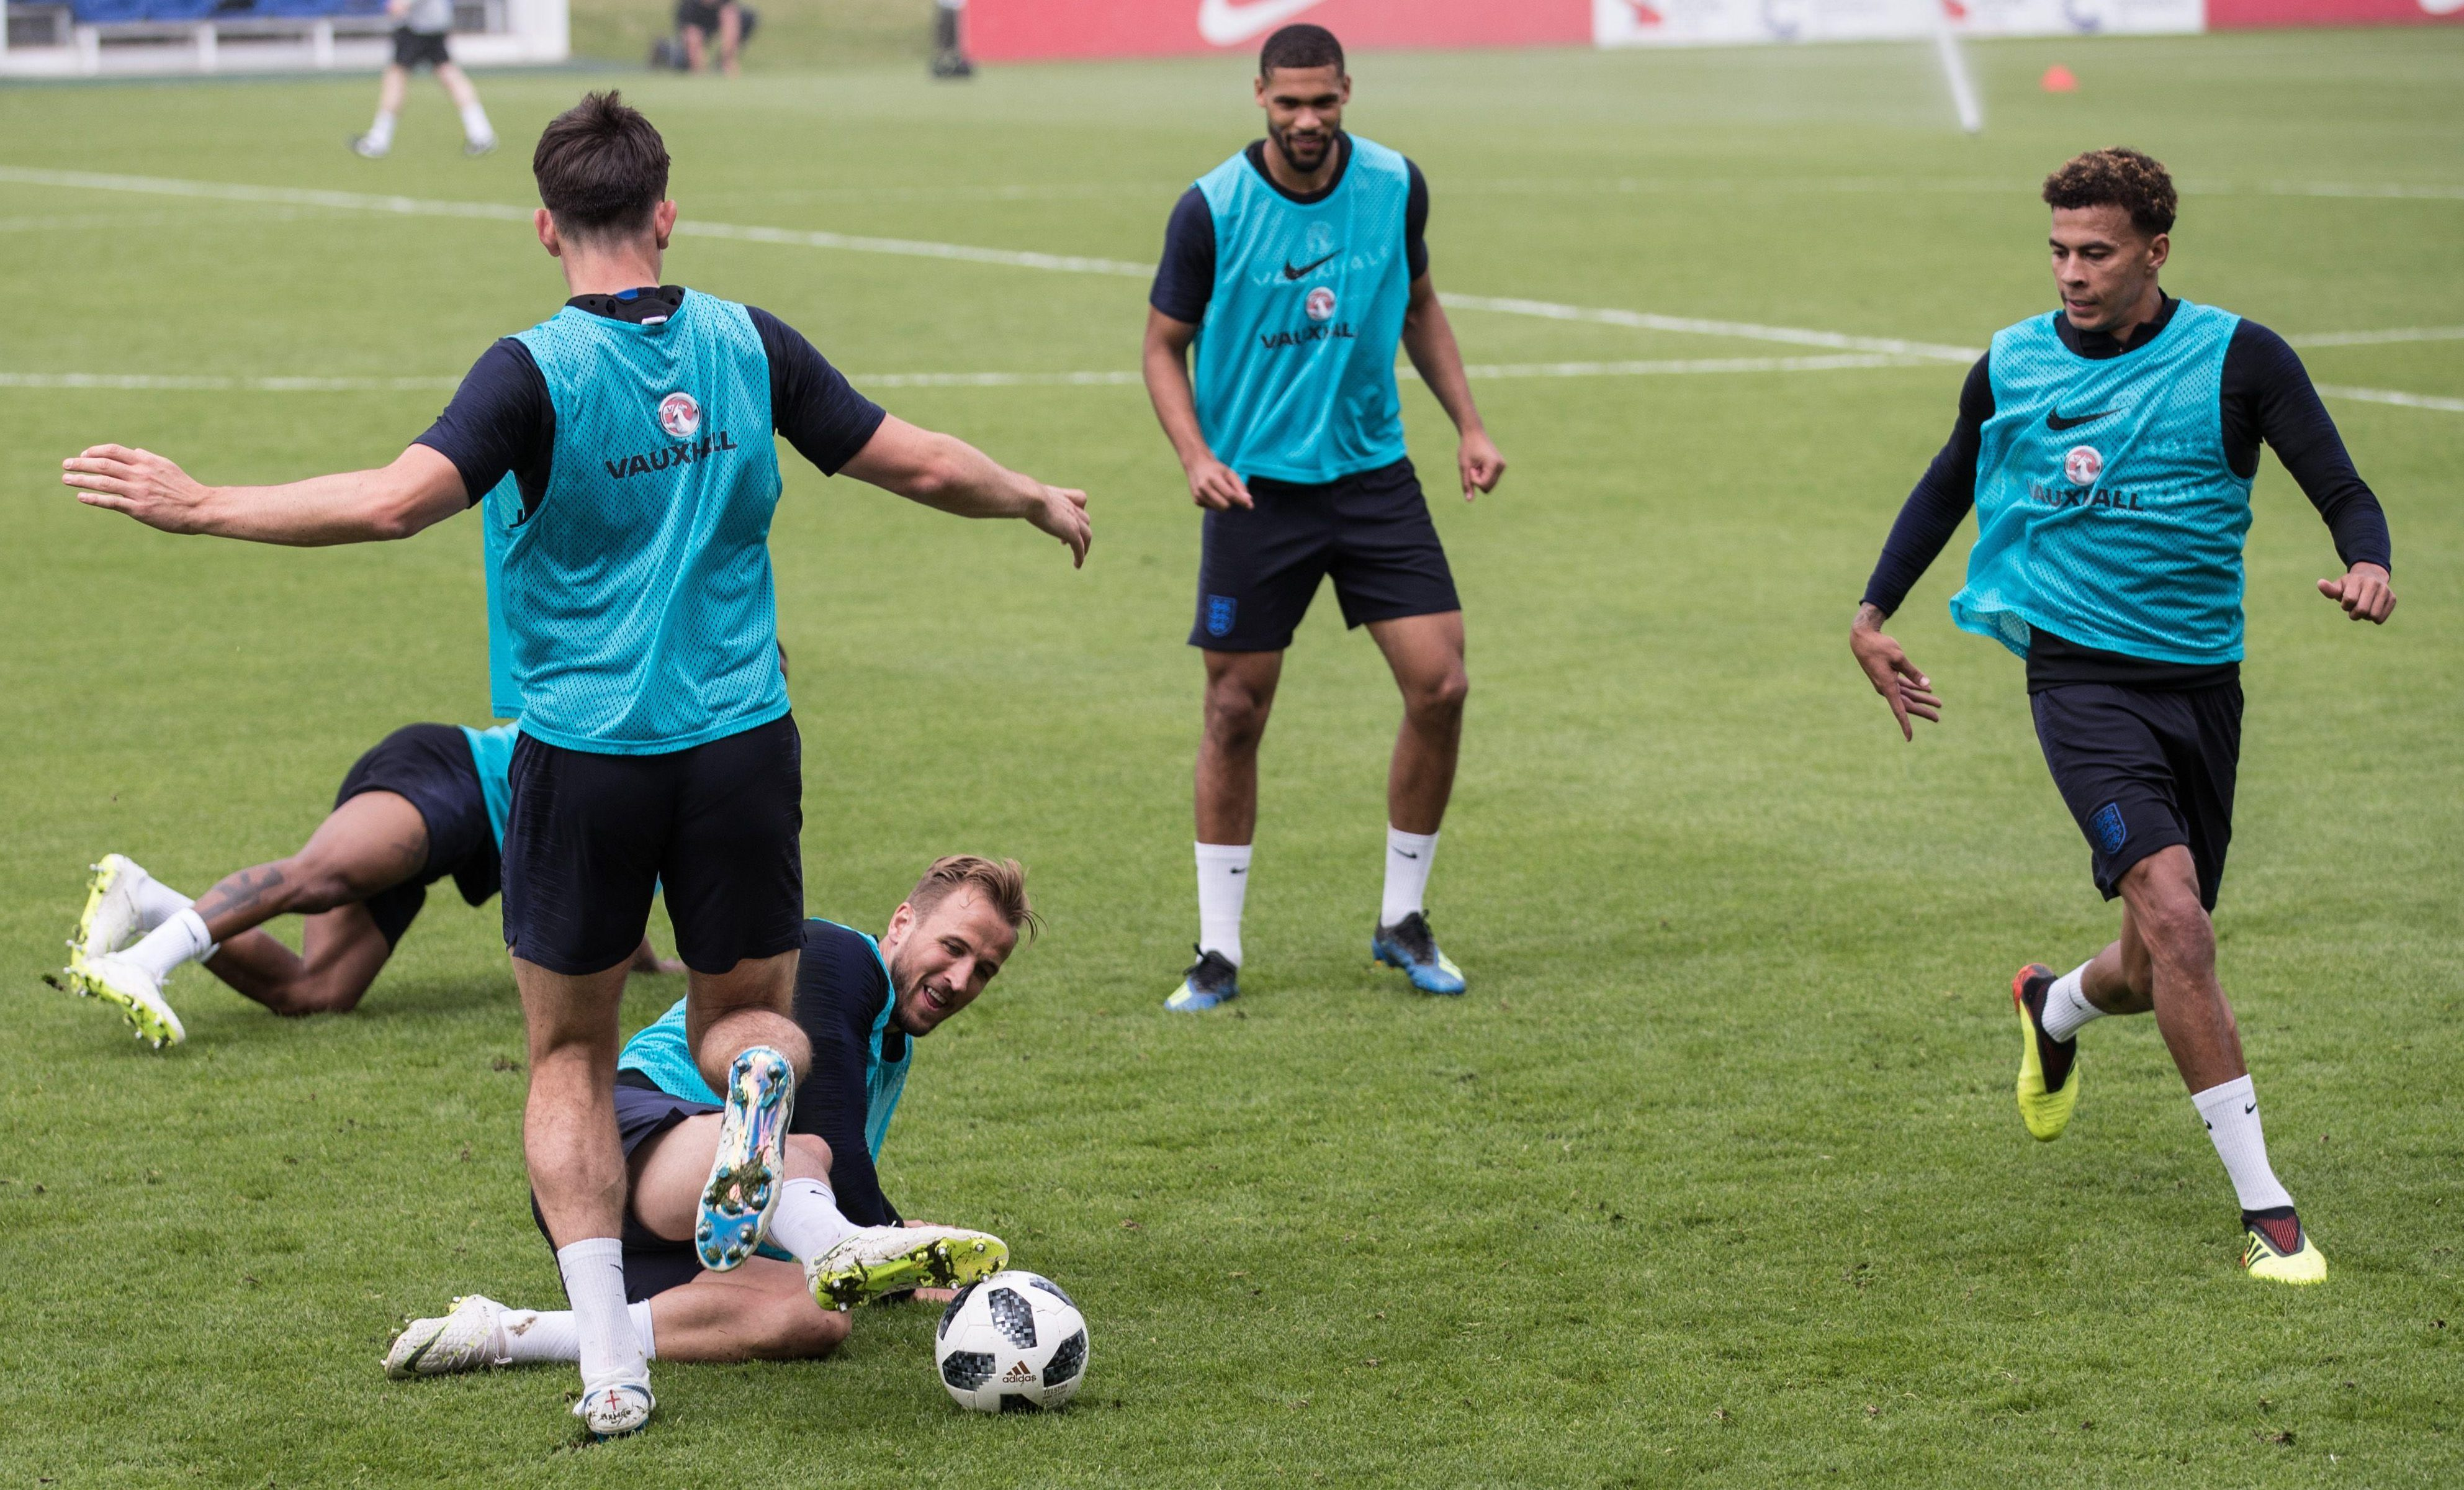 Harry Kane lunges in to tackle Harry Maguire during the training session